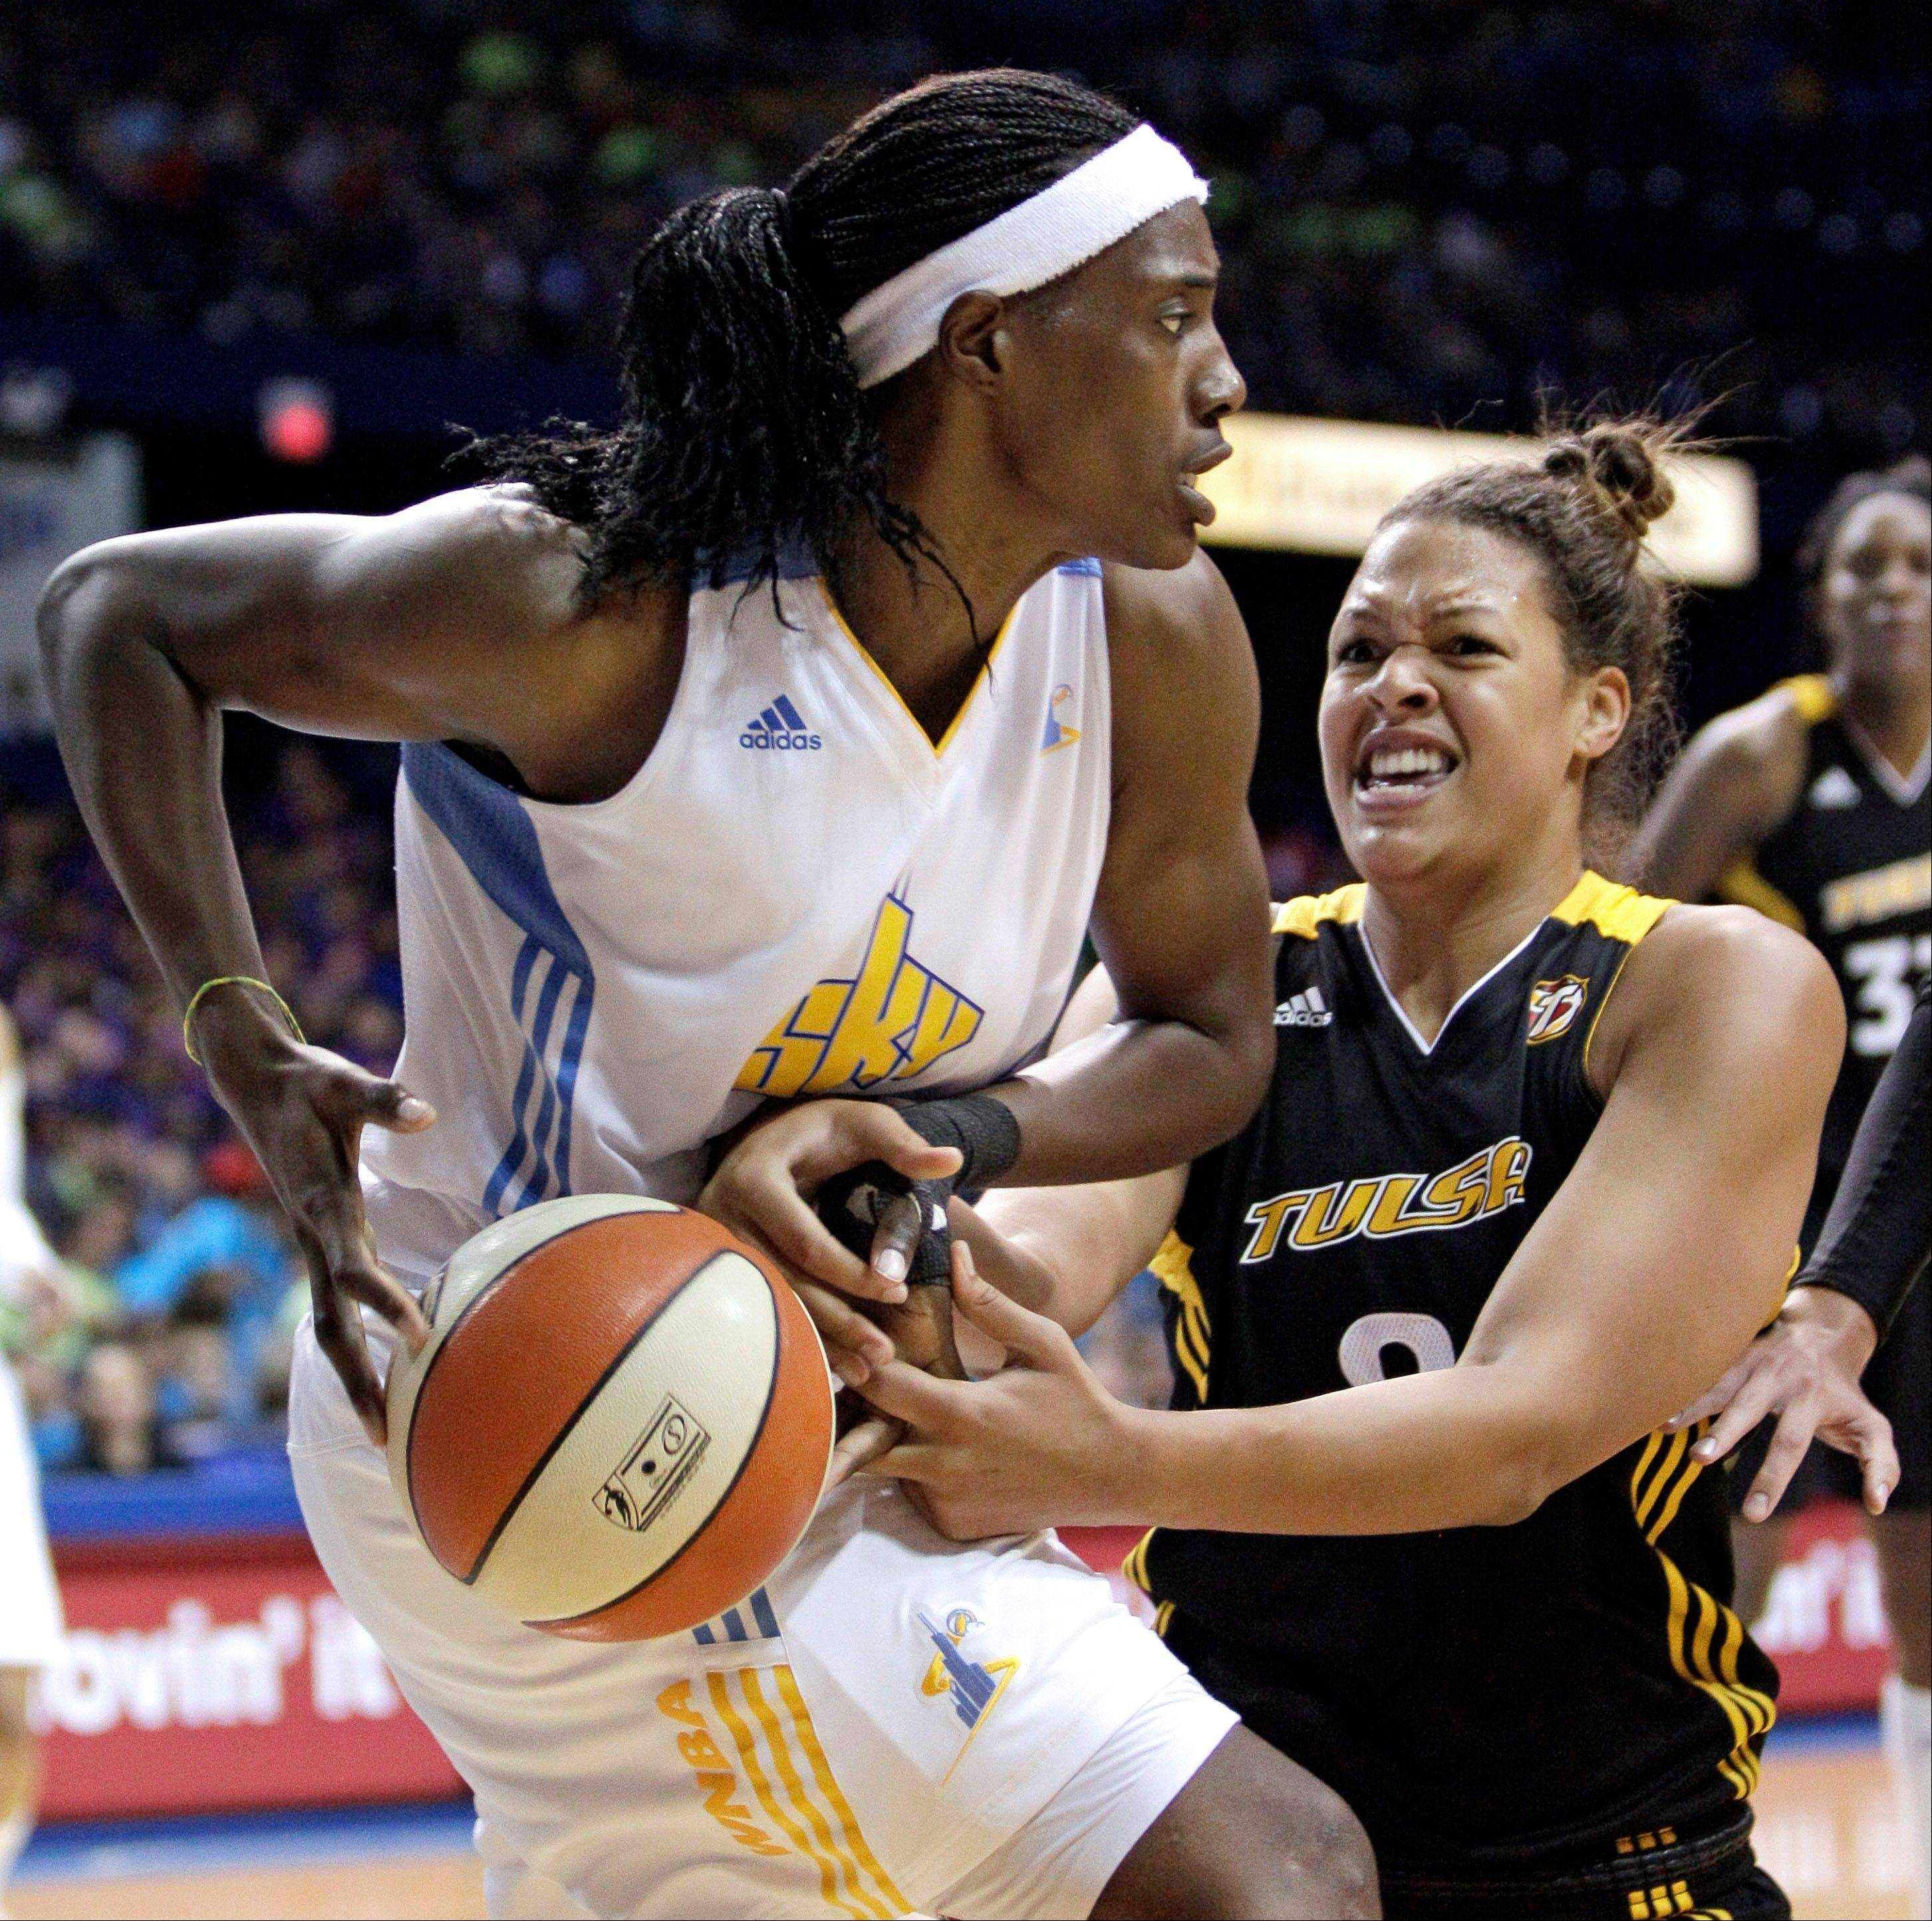 The Chicago Sky's Sylvia Fowles, left, and Tulsa Shock's Elizabeth Cambage battle for a rebound during the second half Wednesday at Allstate Arena.